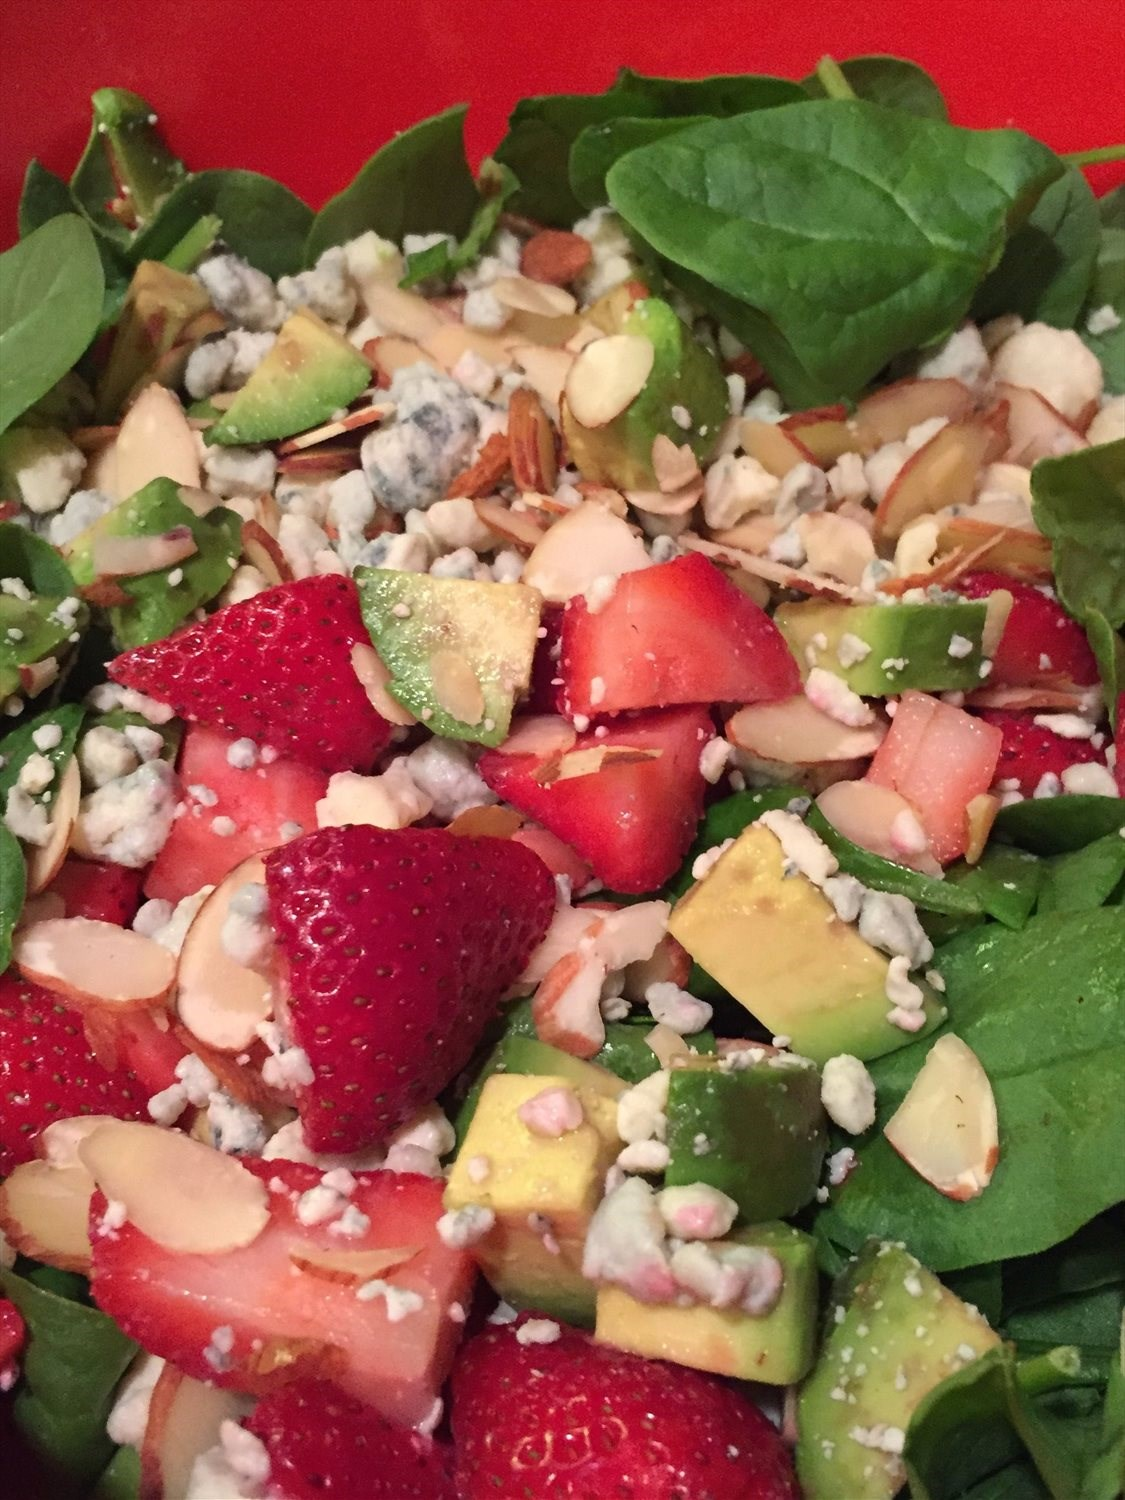 Strawberry Almond Salad with Poppyseed Dressing